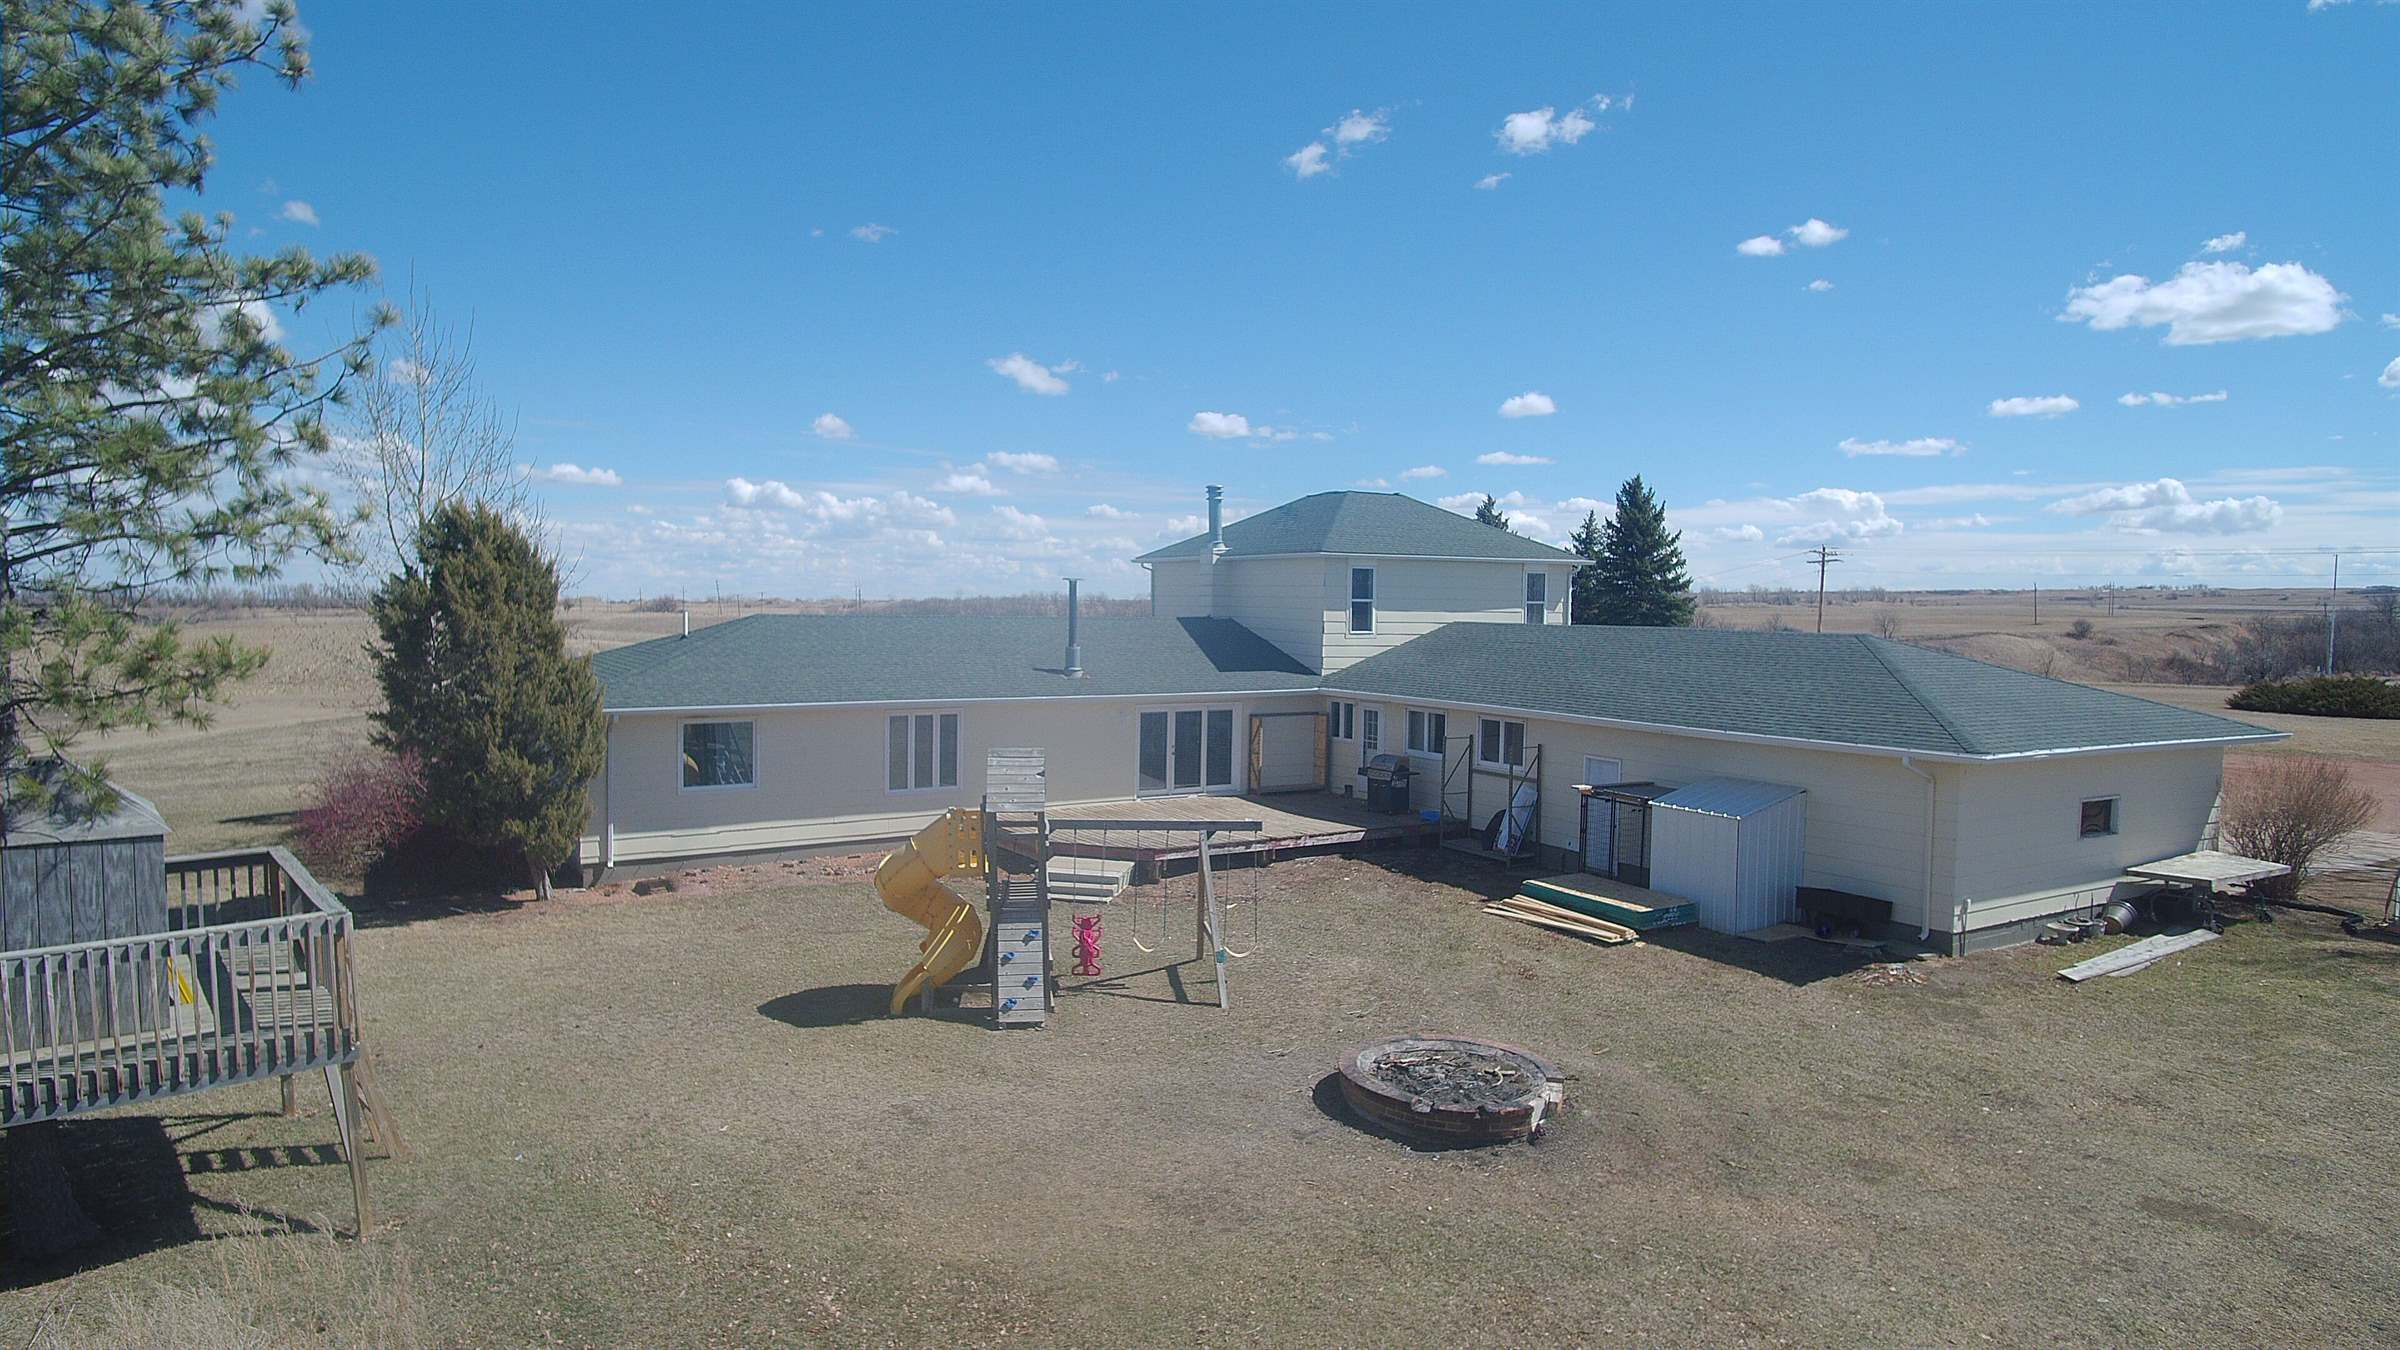 15201 261st Ave SE, Sawyer, ND 58781